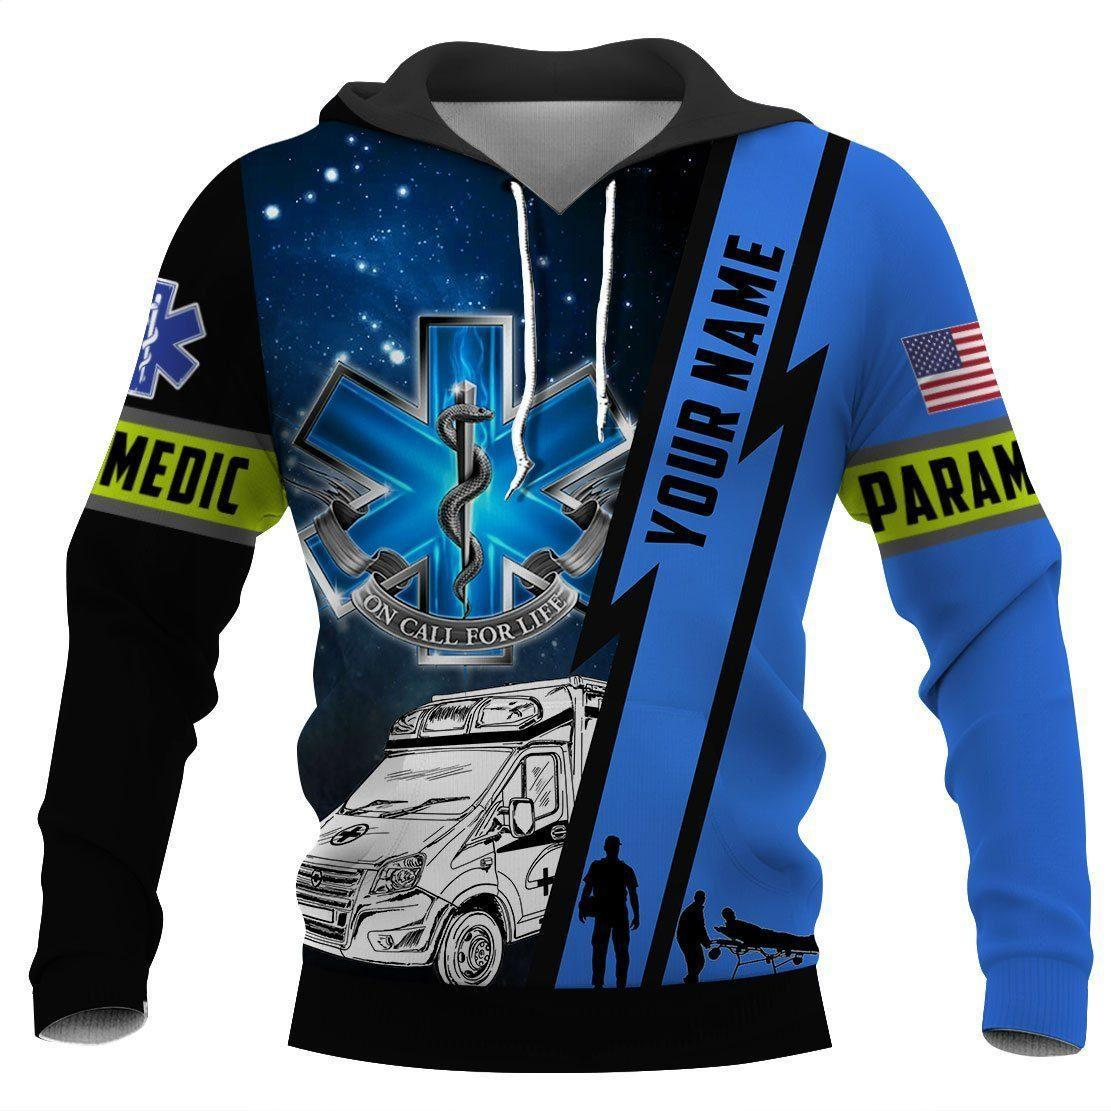 Paramedic 3d hoodie shirt for men and women HG33004-Apparel-HG-Hoodie-S-Vibe Cosy™